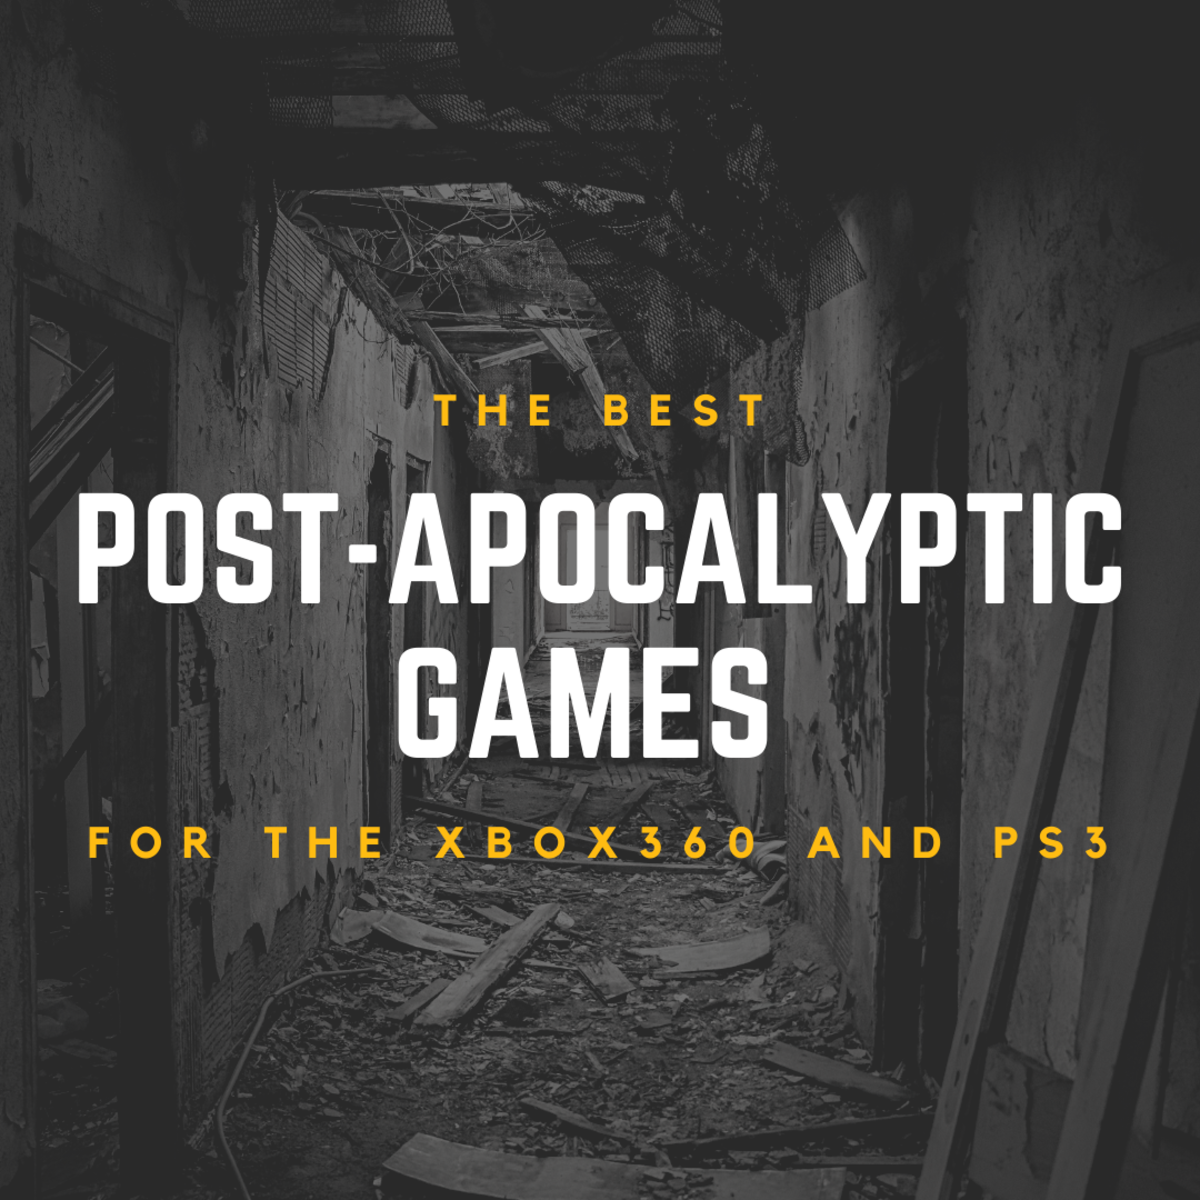 6 Post-Apocalyptic Games for the Xbox 360 and PS3